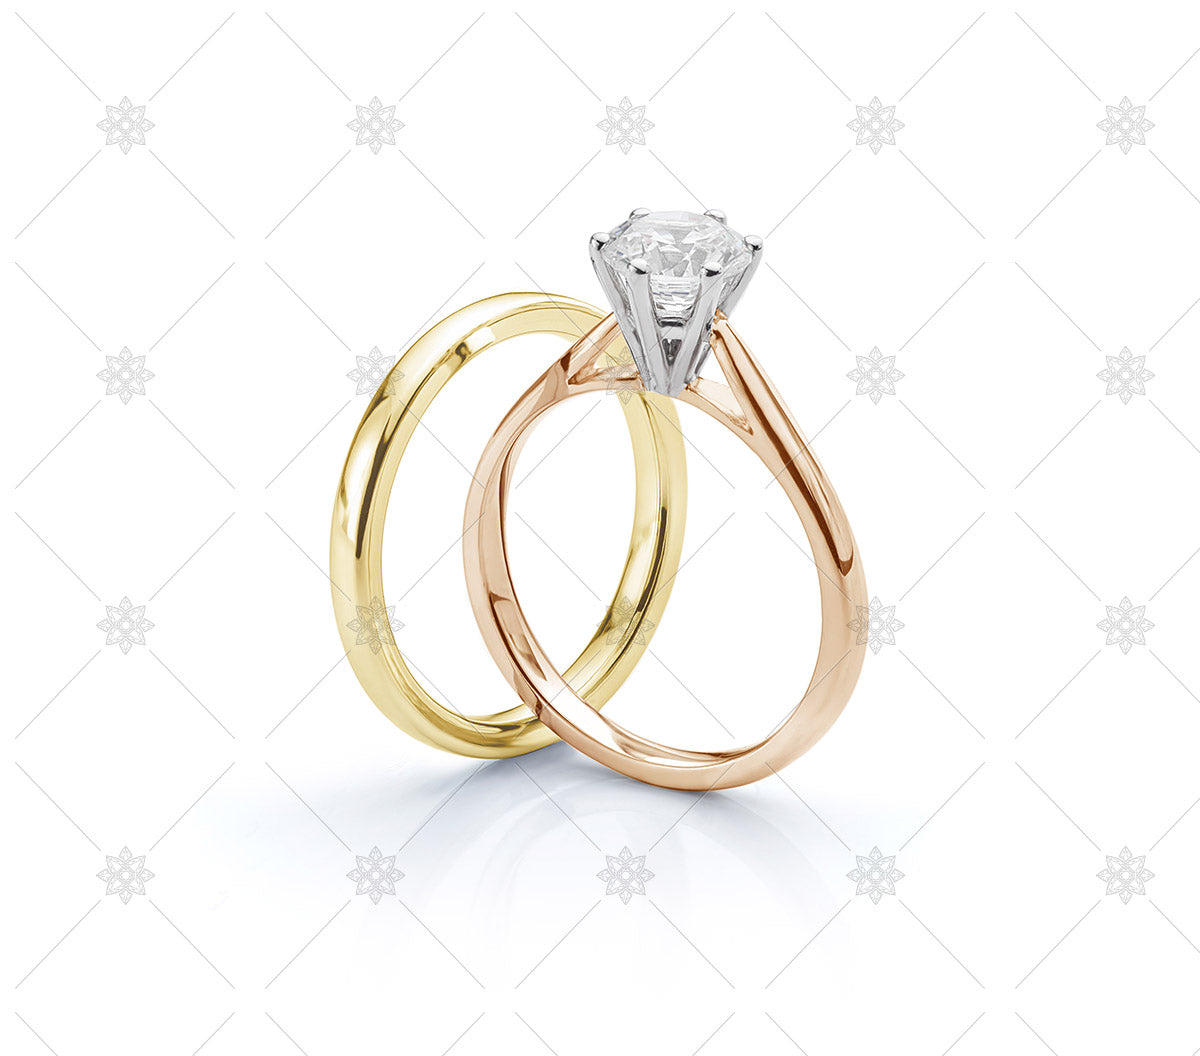 Yellow Gold Wedding Ring and Rose Gold Engagement Ring set